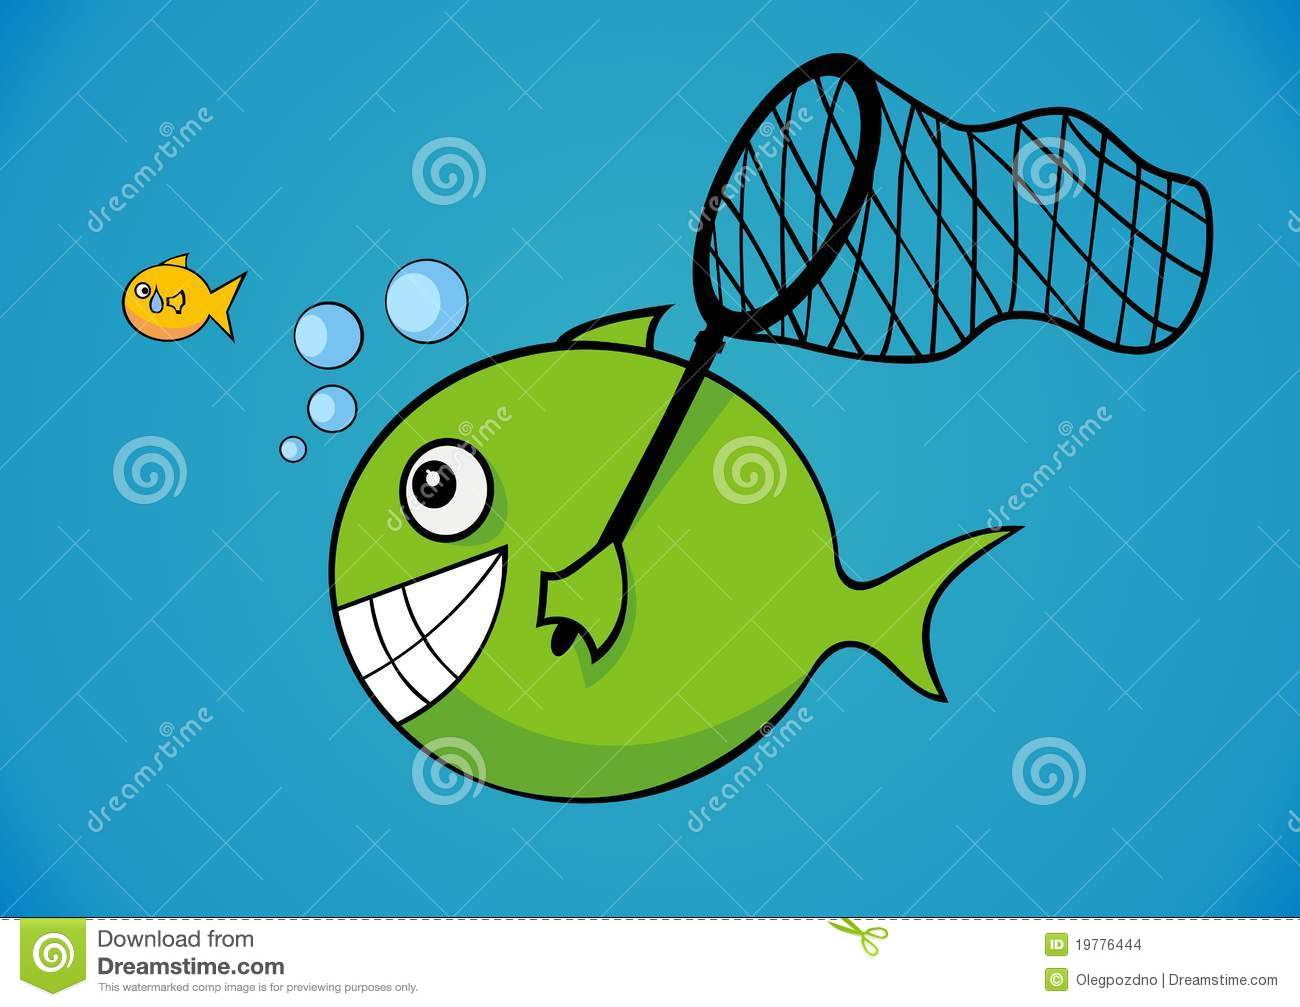 Big and little fish stock images image 19776444 for Big fish little fish